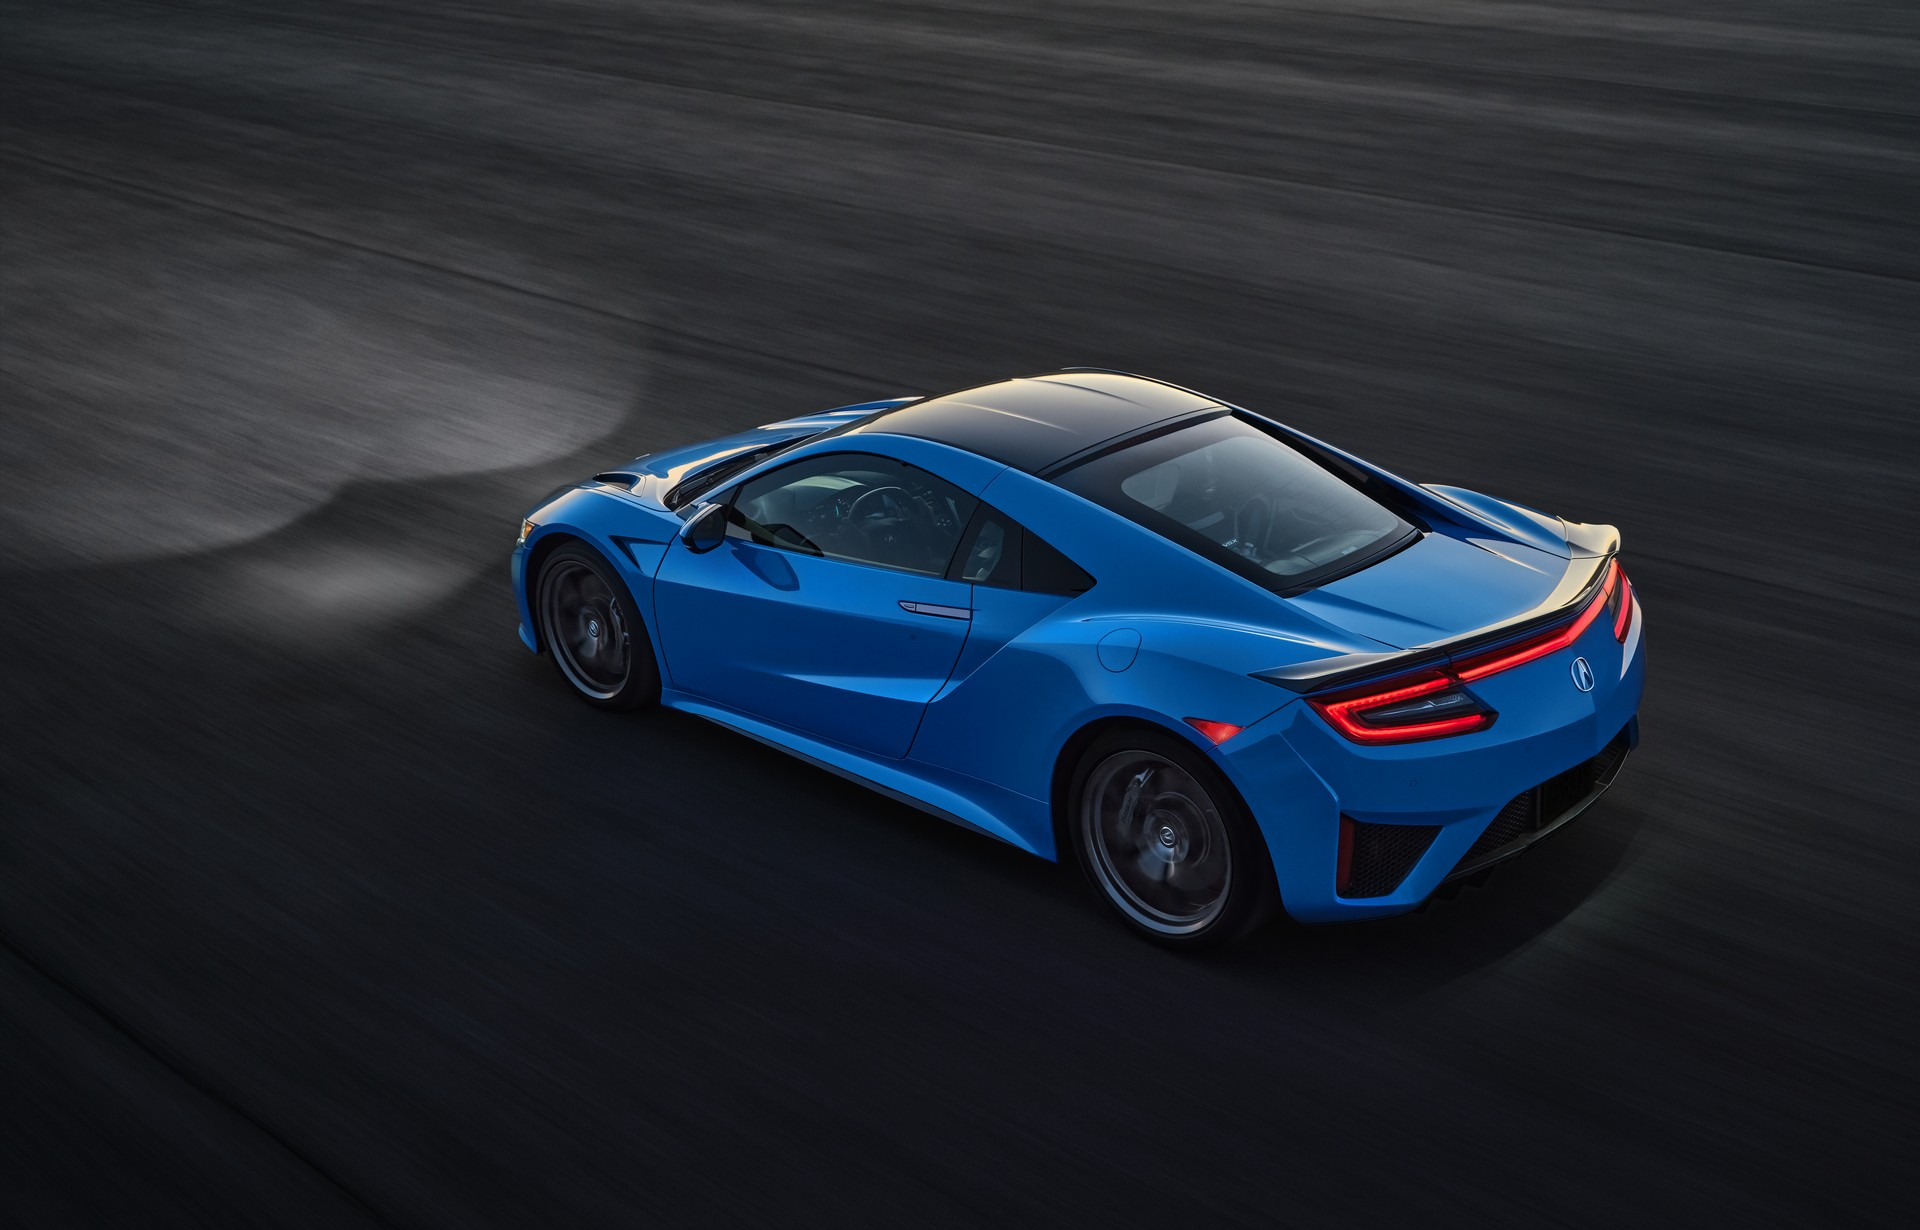 2021 Acura Nsx Comes In Beautiful Long Beach Blue Pearl Colour Option Acura Supercars Net